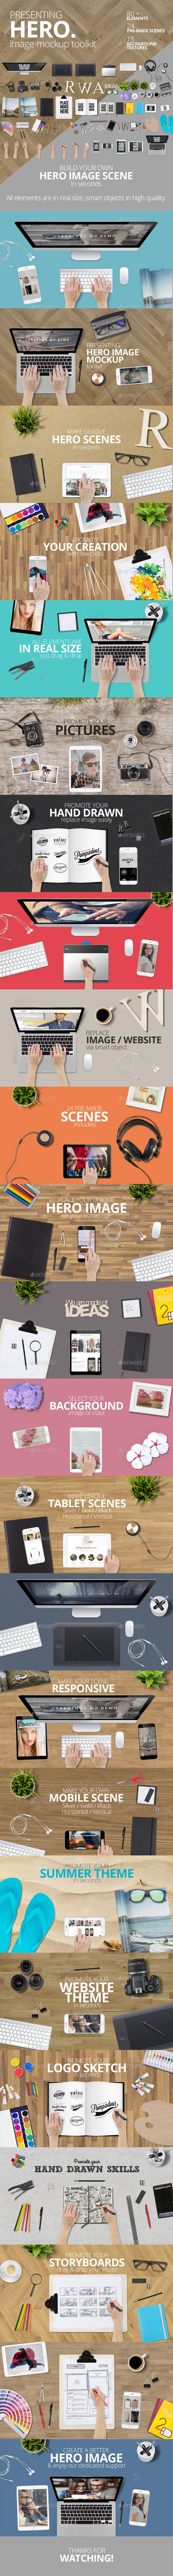 Hero Mockup Toolkit - Hero Images Graphics